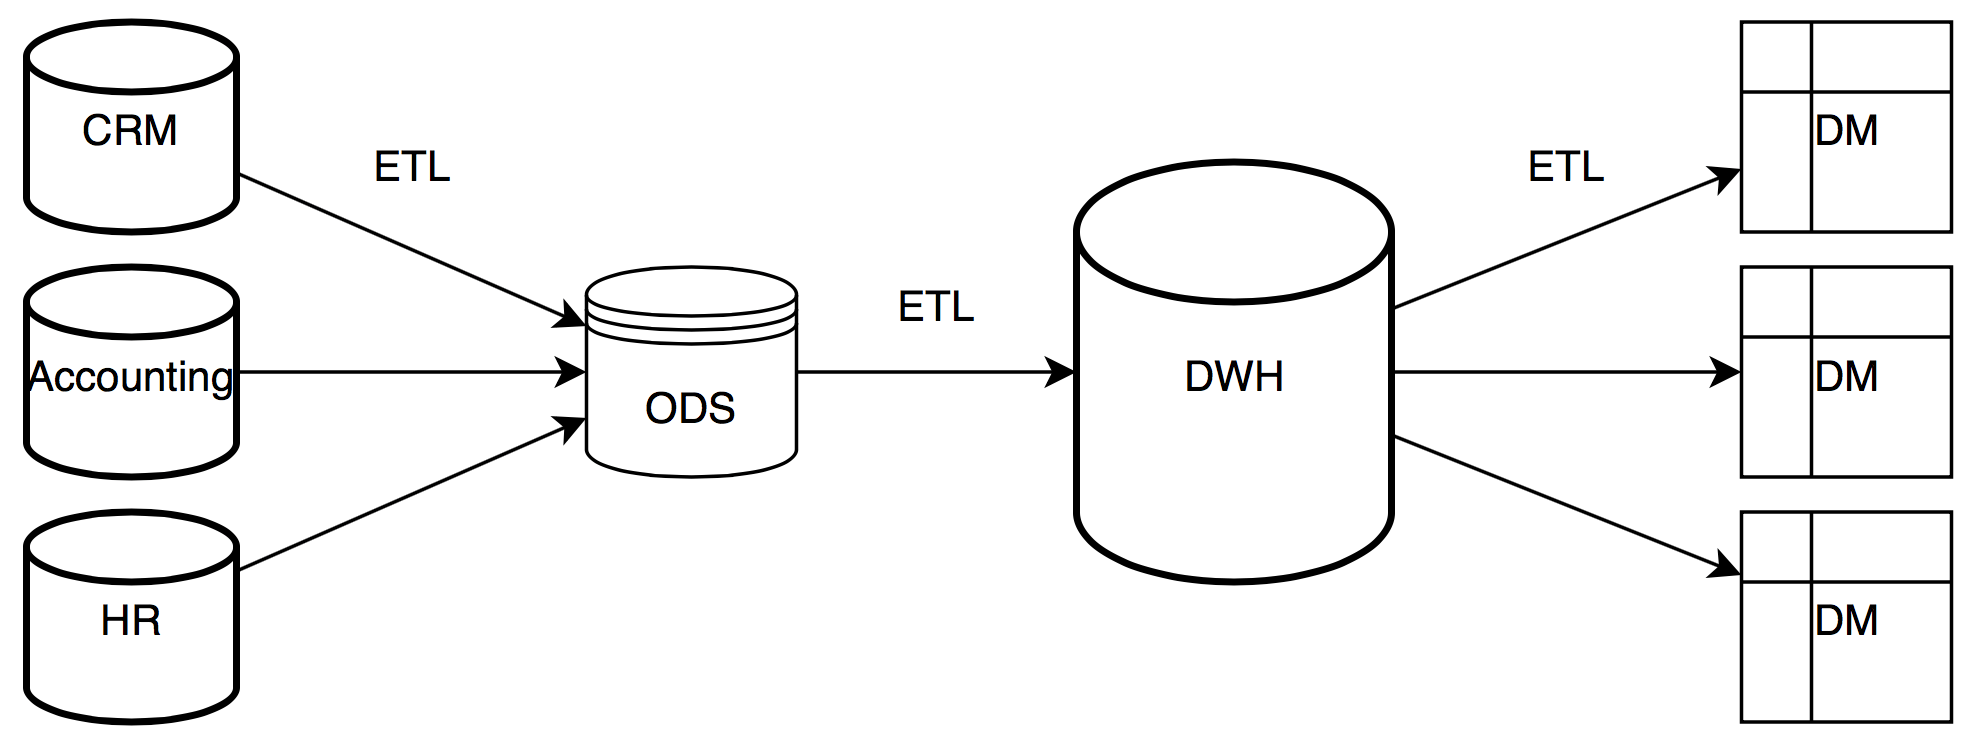 Introduction to NoSQL reporting